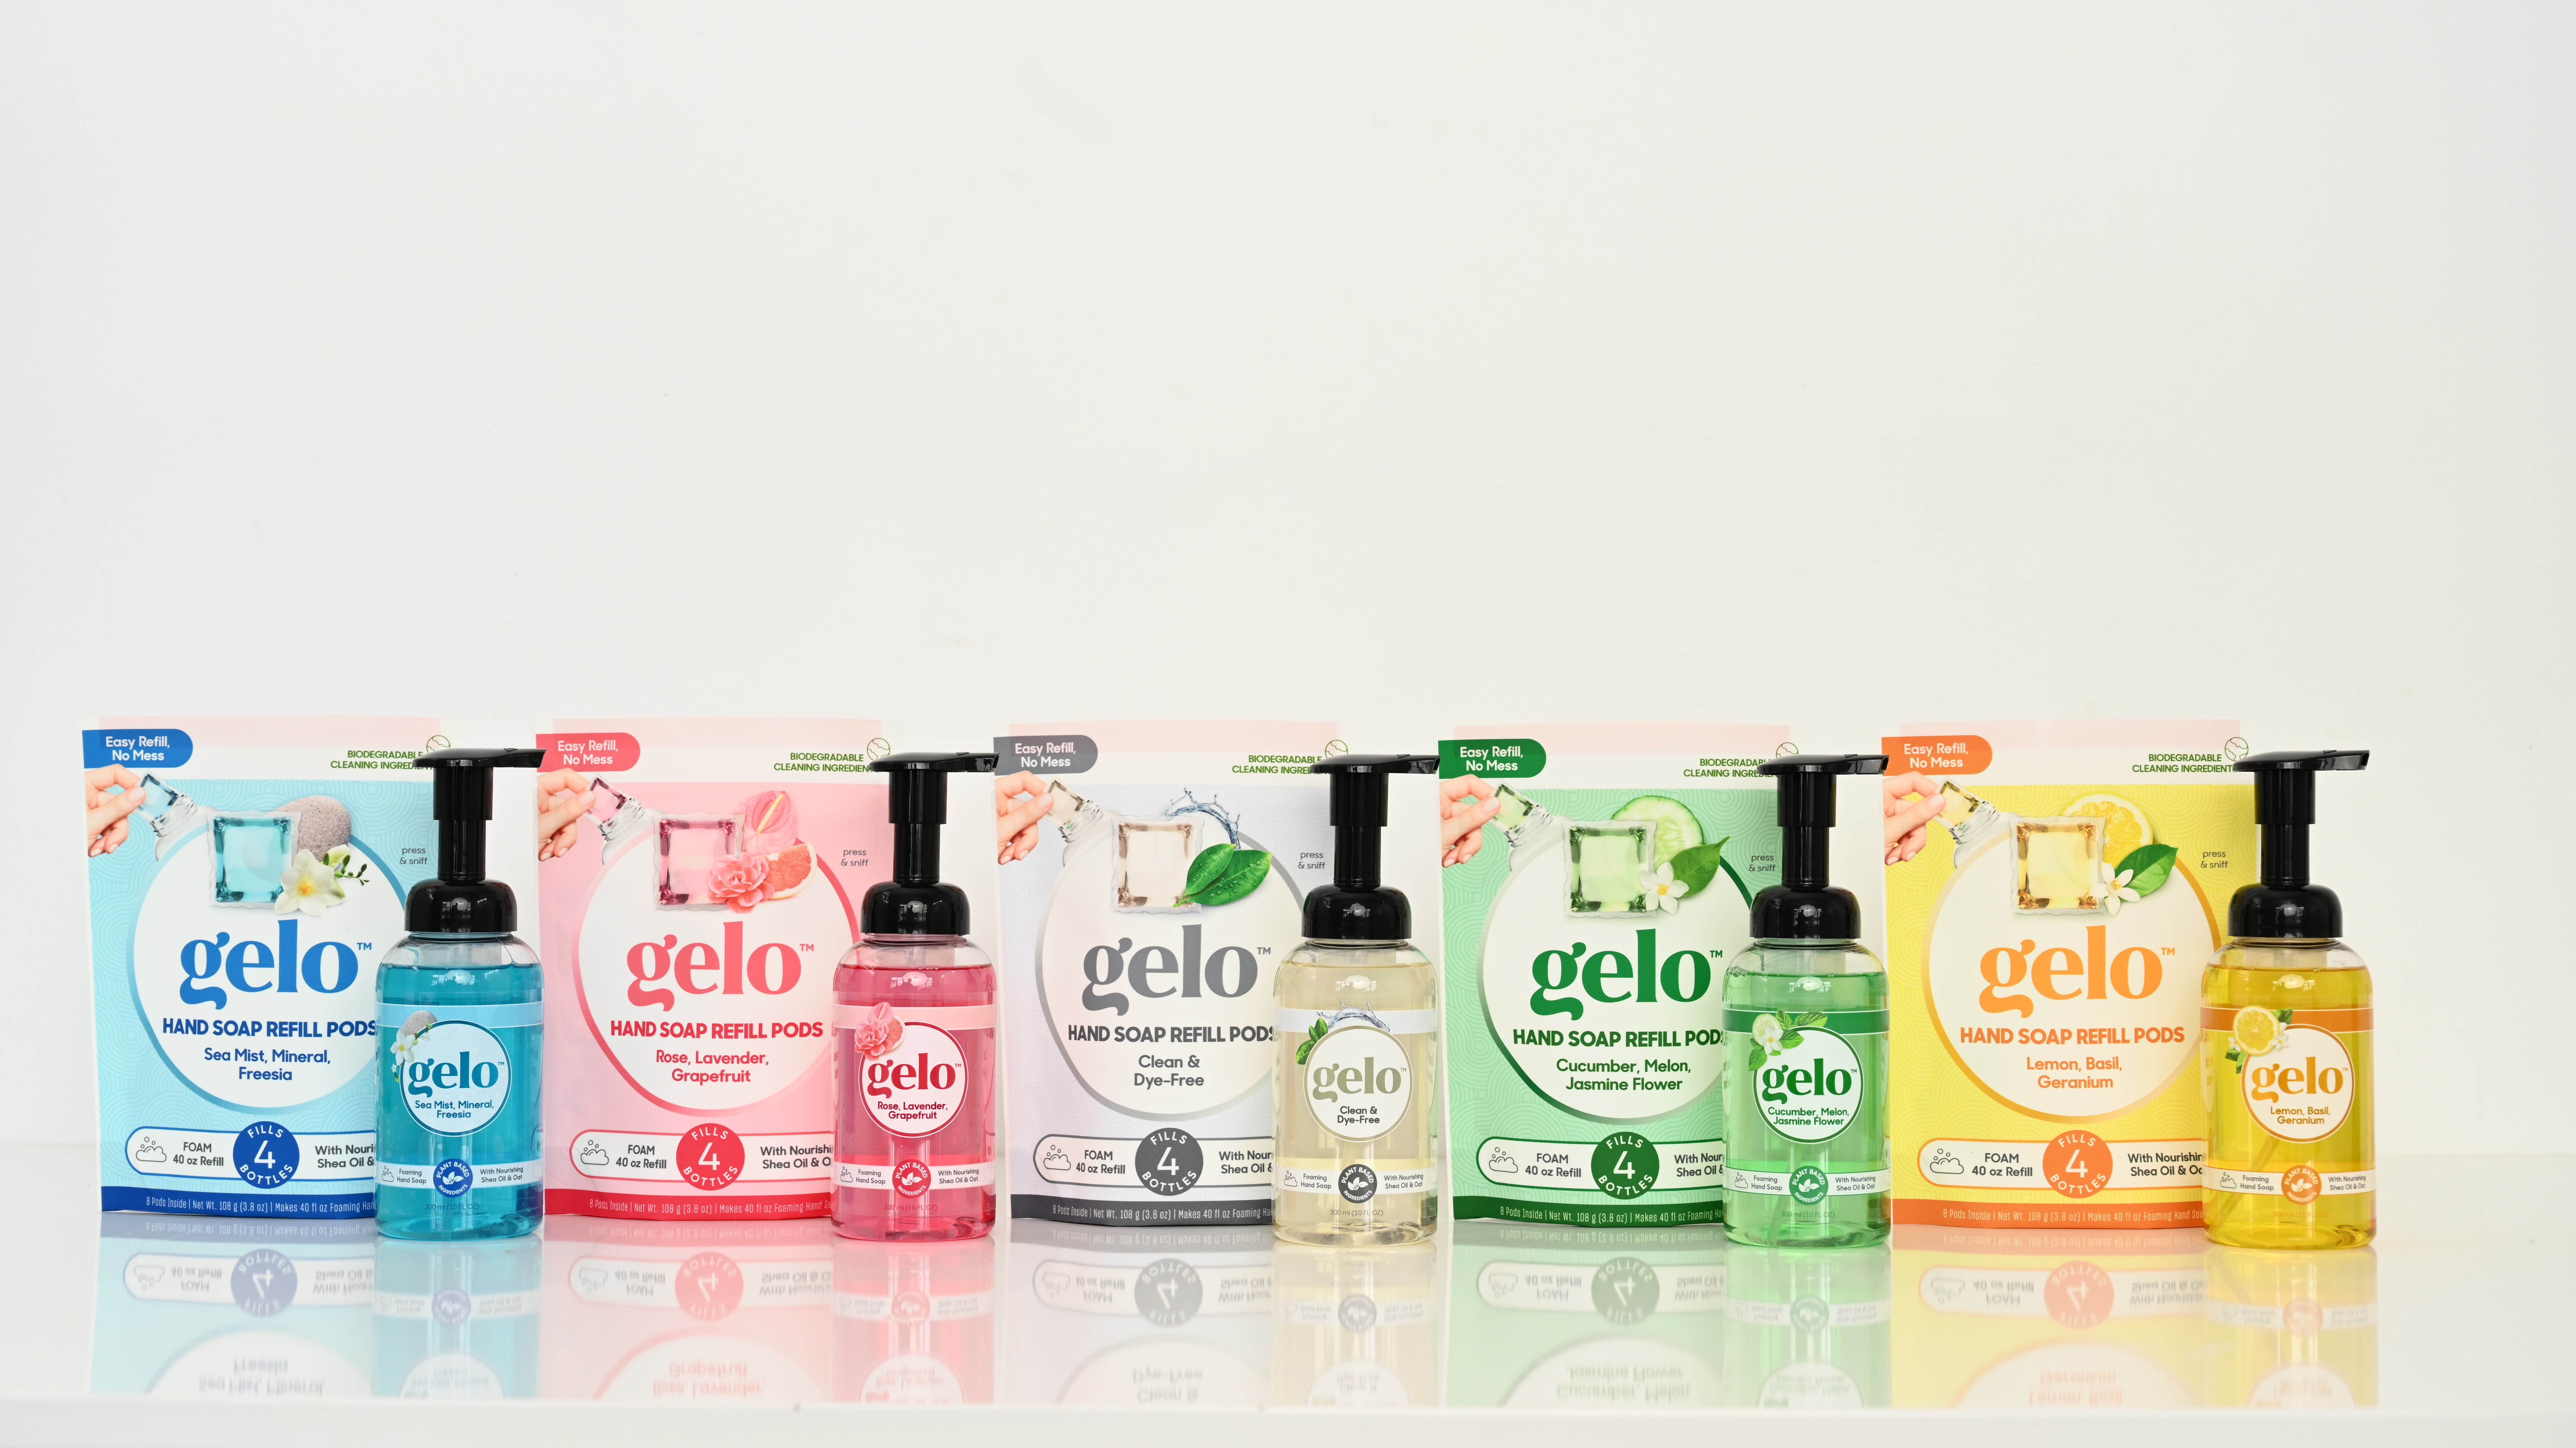 Gelo hand soap refillable biodegradable